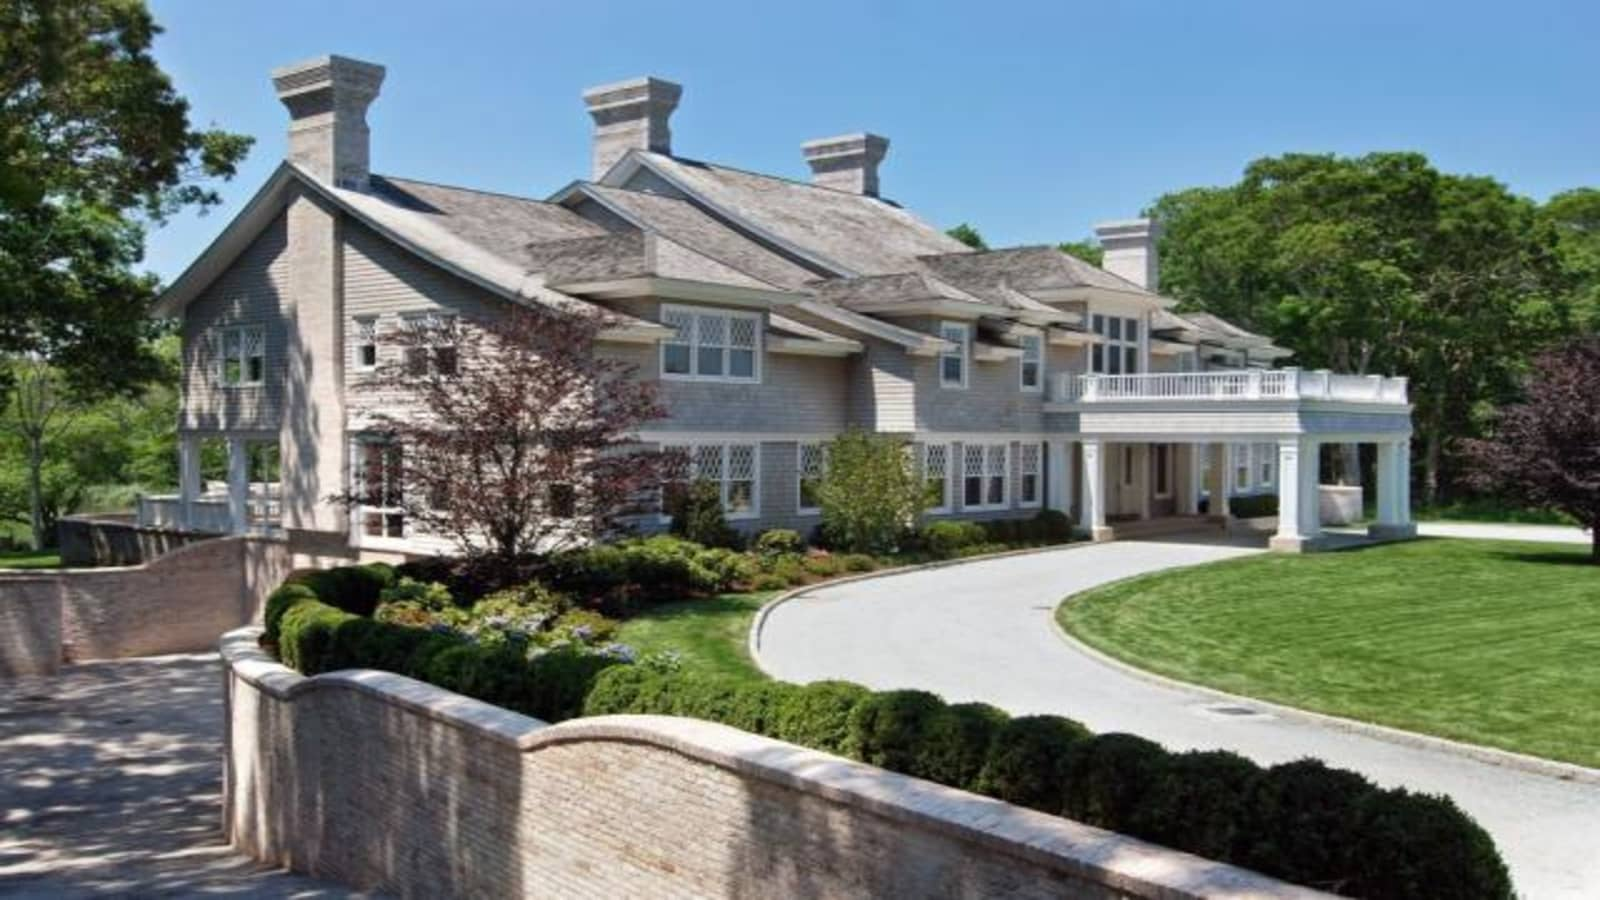 Beyonce And Jay Z Bought A 26 Million House In The Hamptons